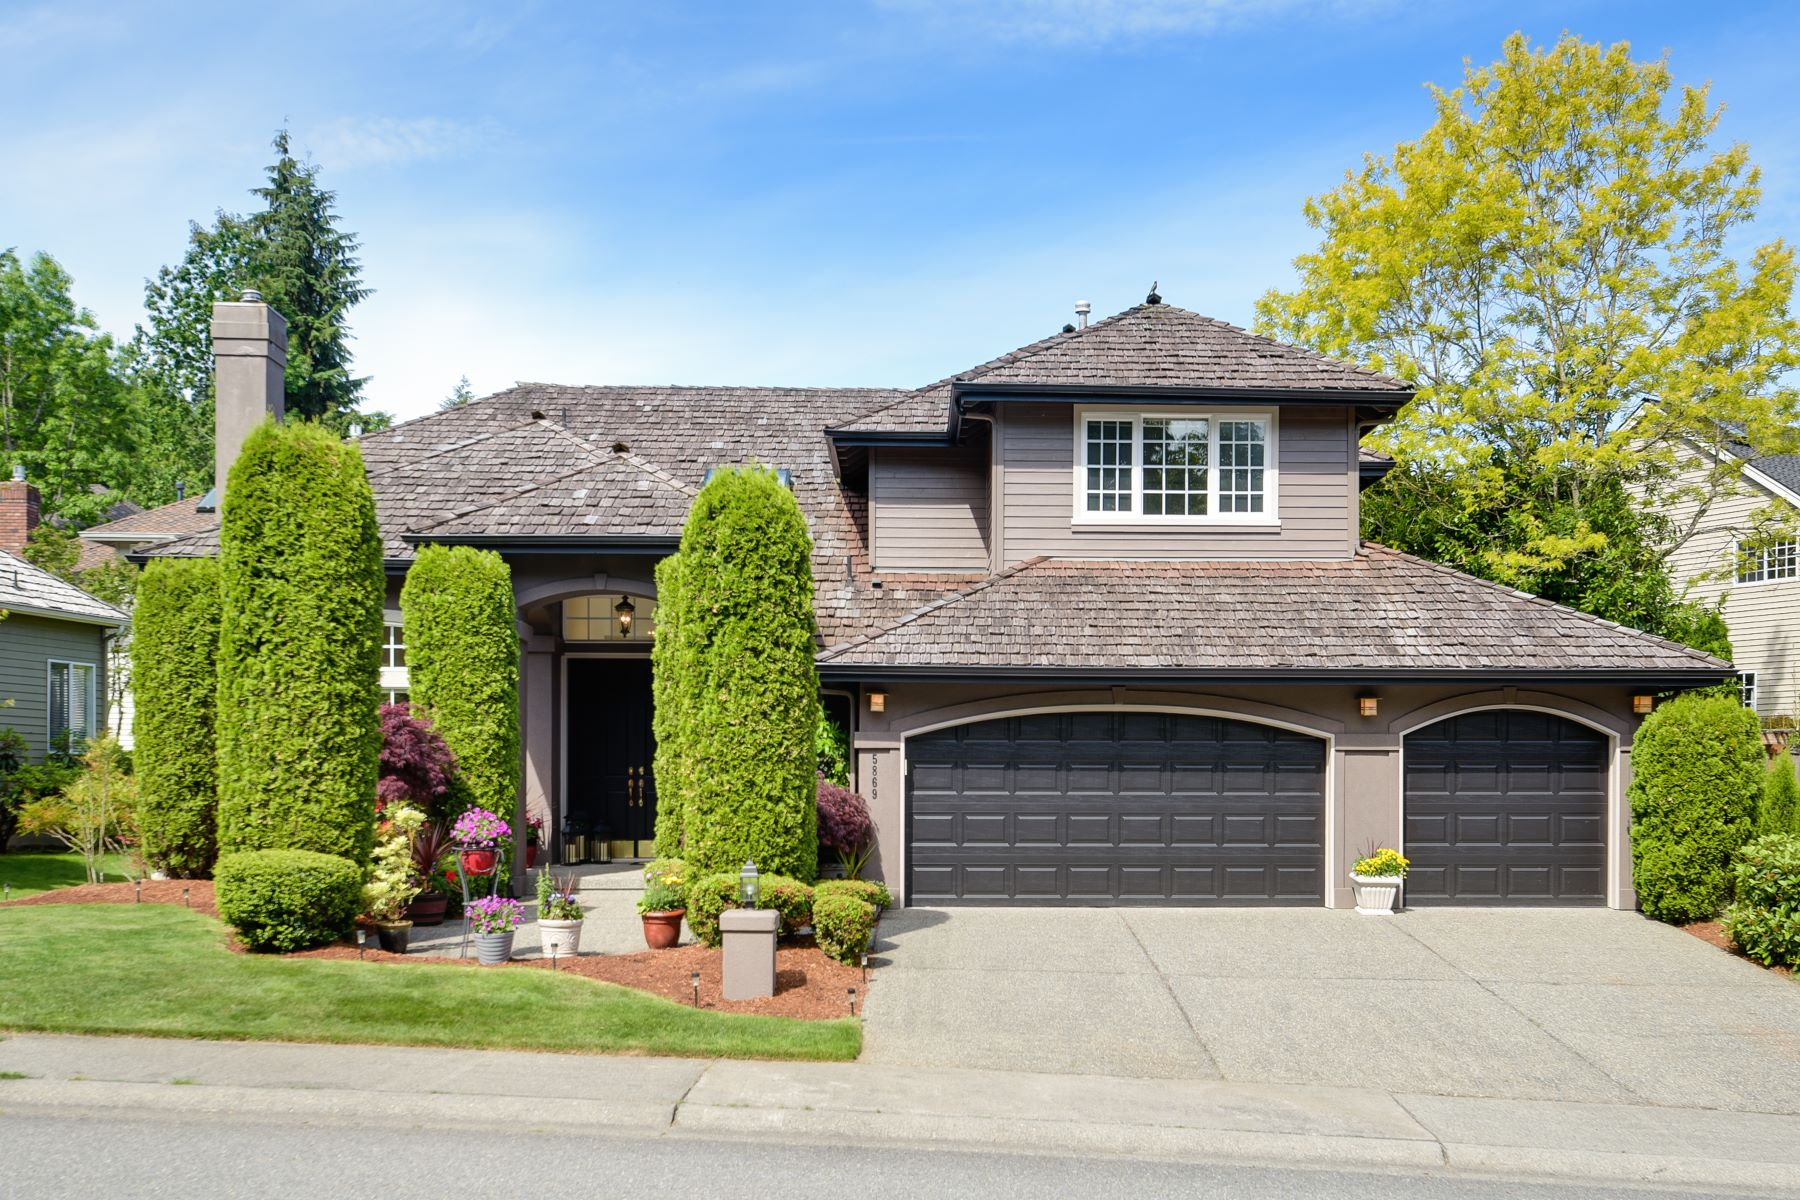 Single Family Homes for Sale at 5869 Mont Blanc Place NW, Issaquah, WA 98027 Issaquah, Washington 98027 United States